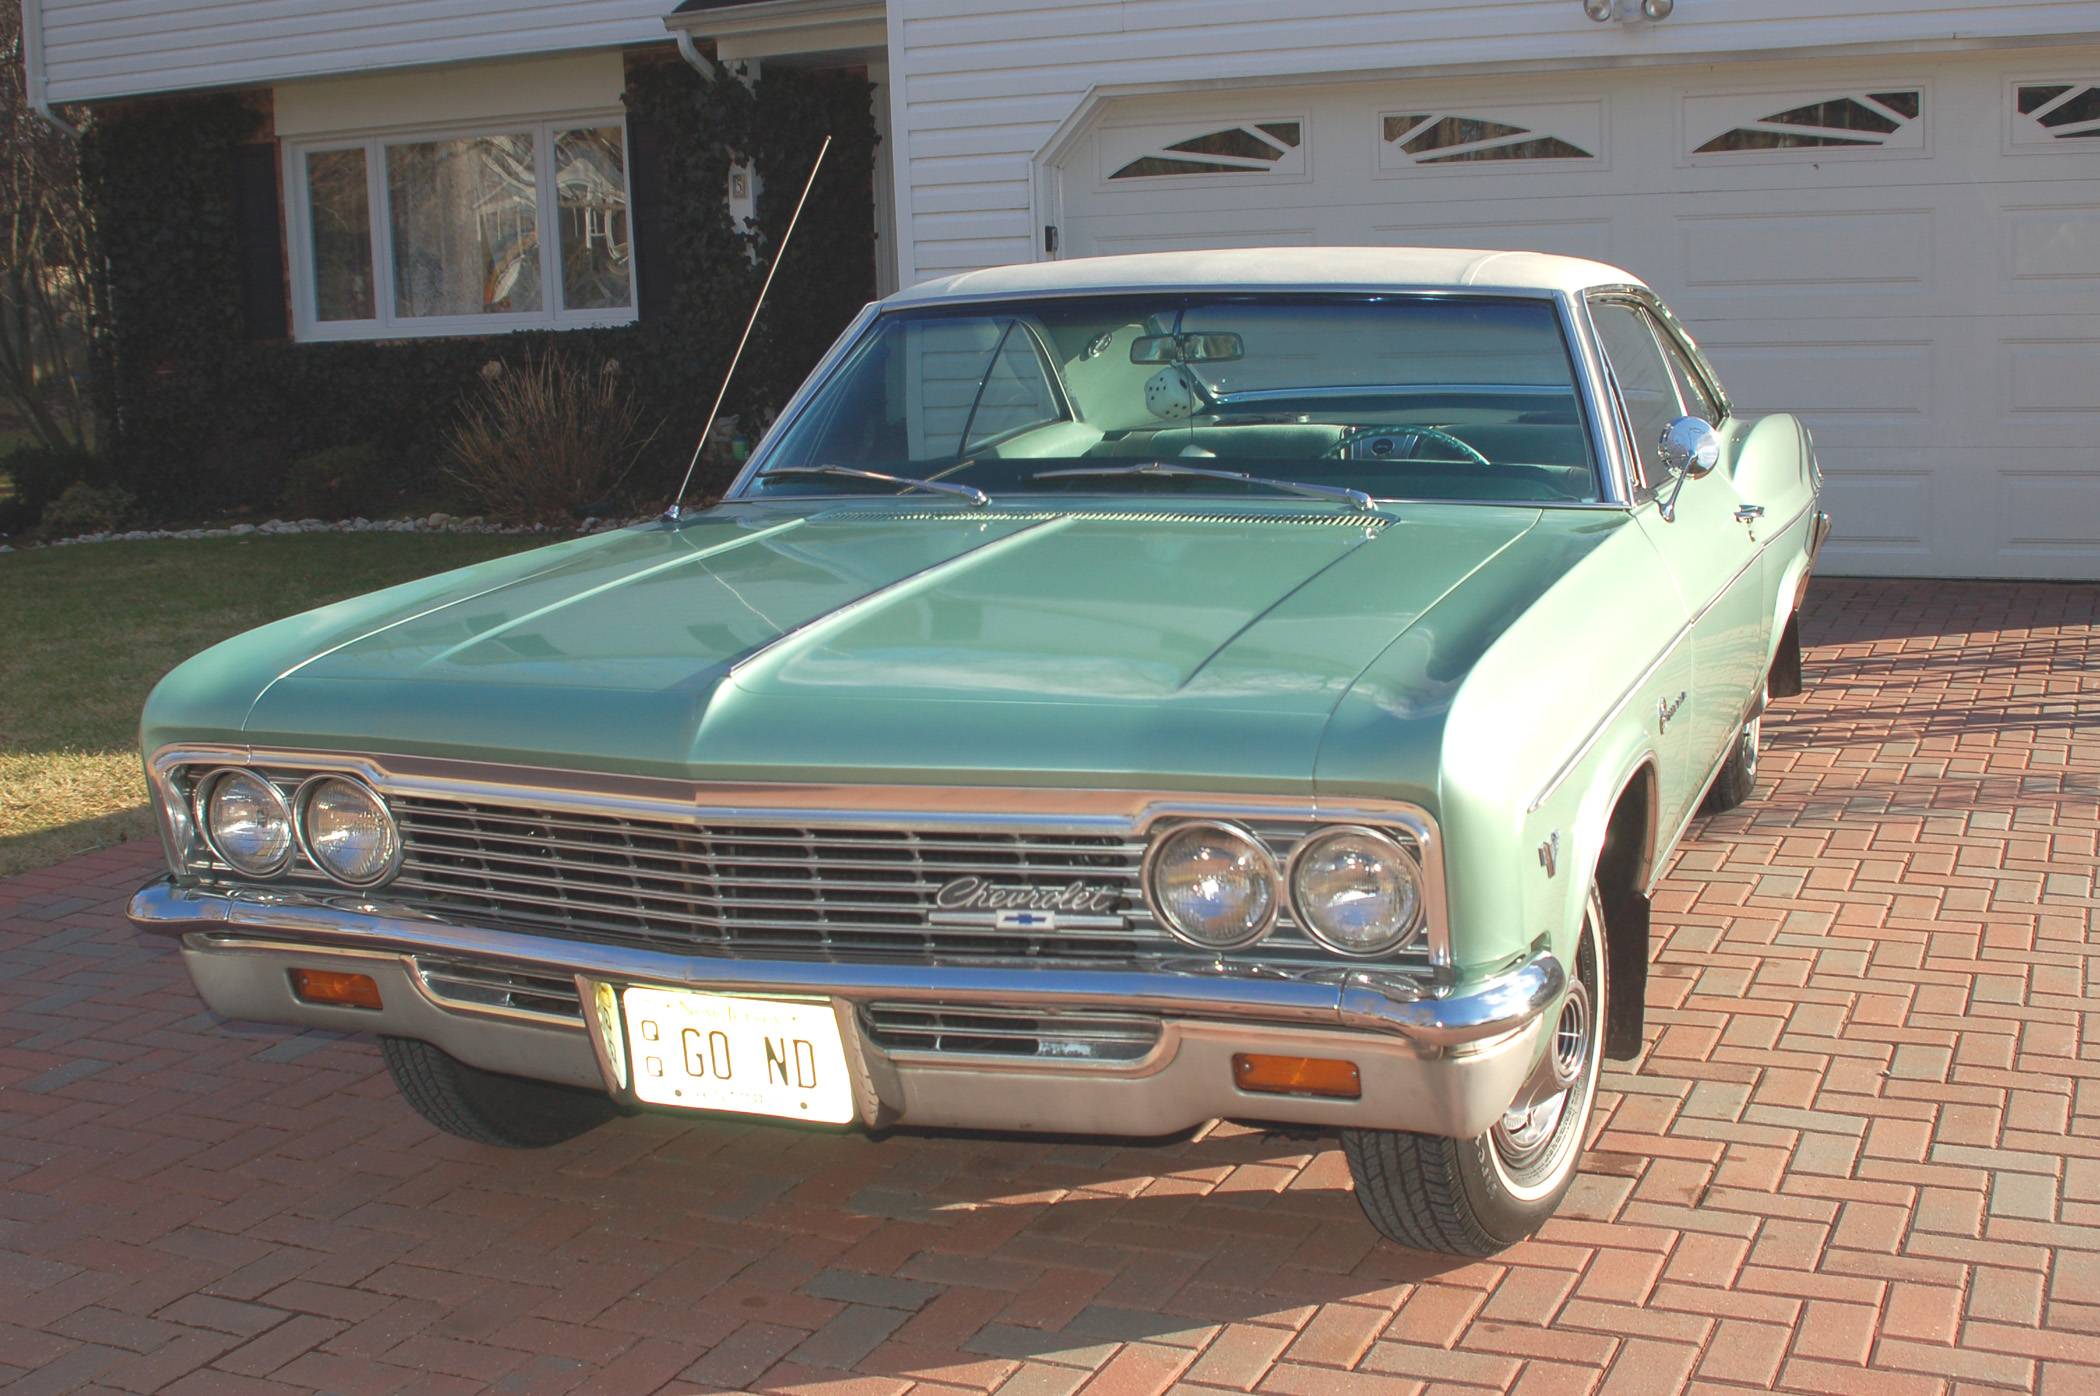 1966 chevrolet impala located in jersey  rust